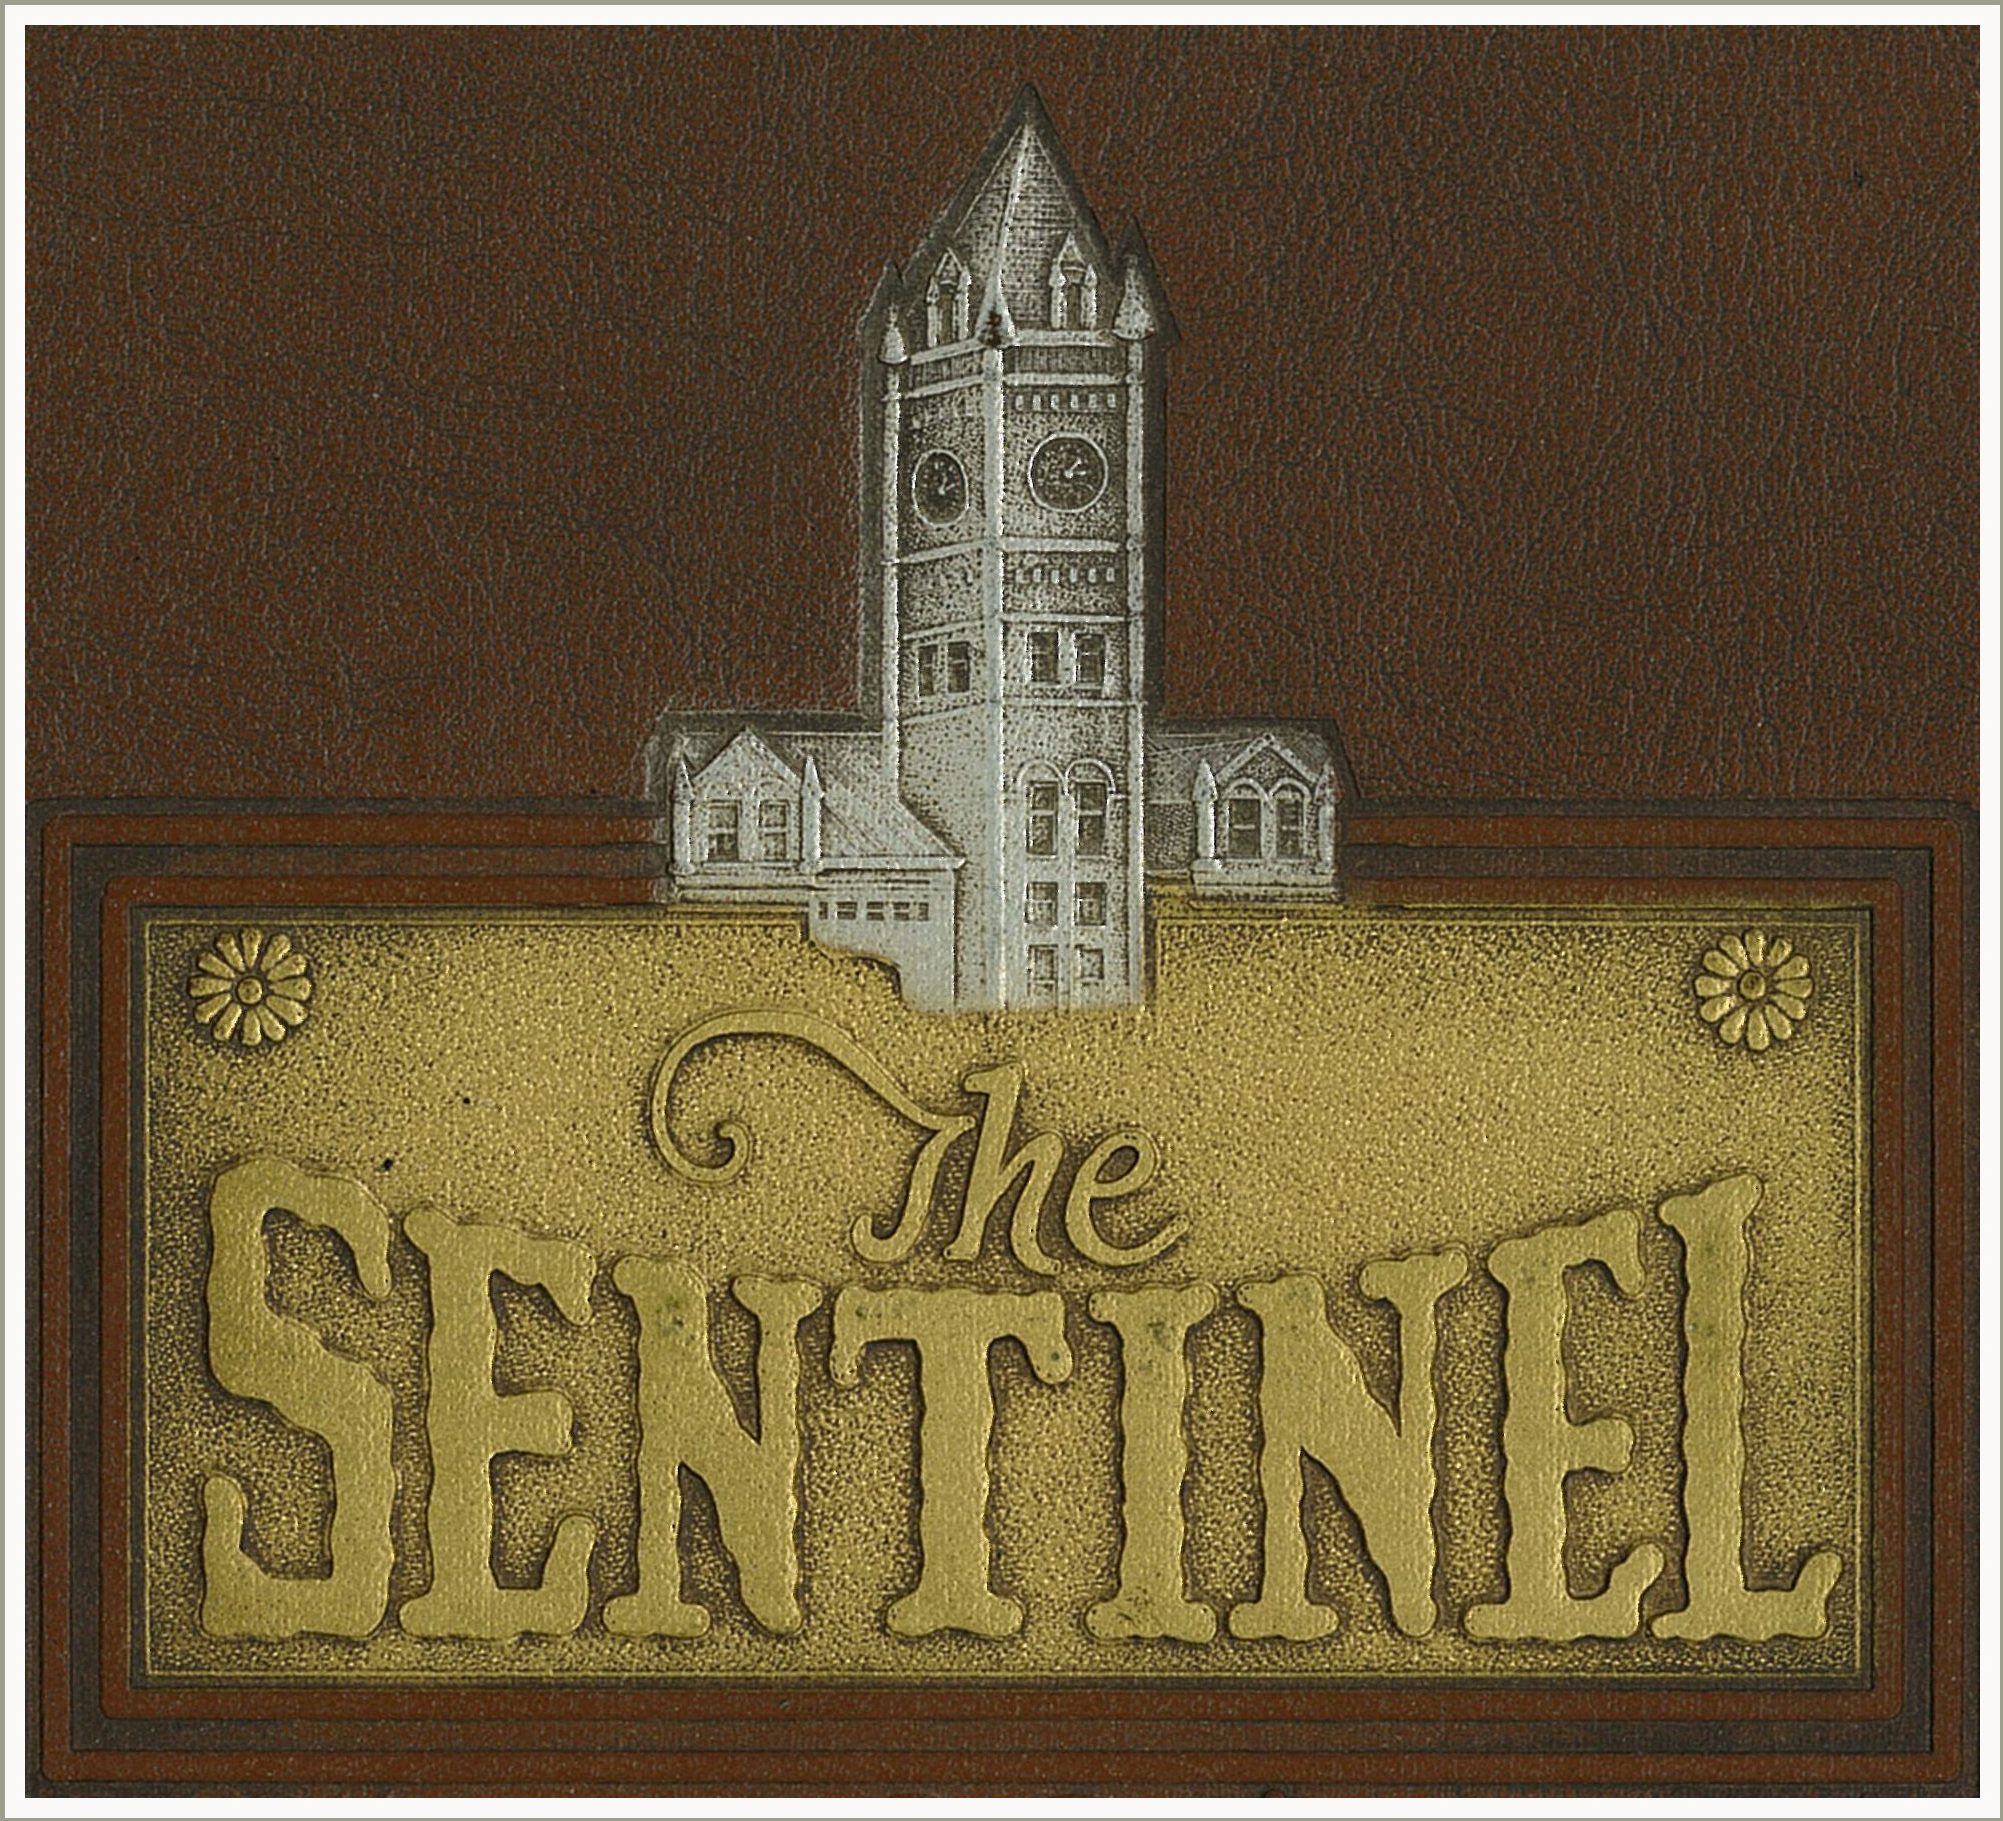 Cover of Sentinel Yearbook